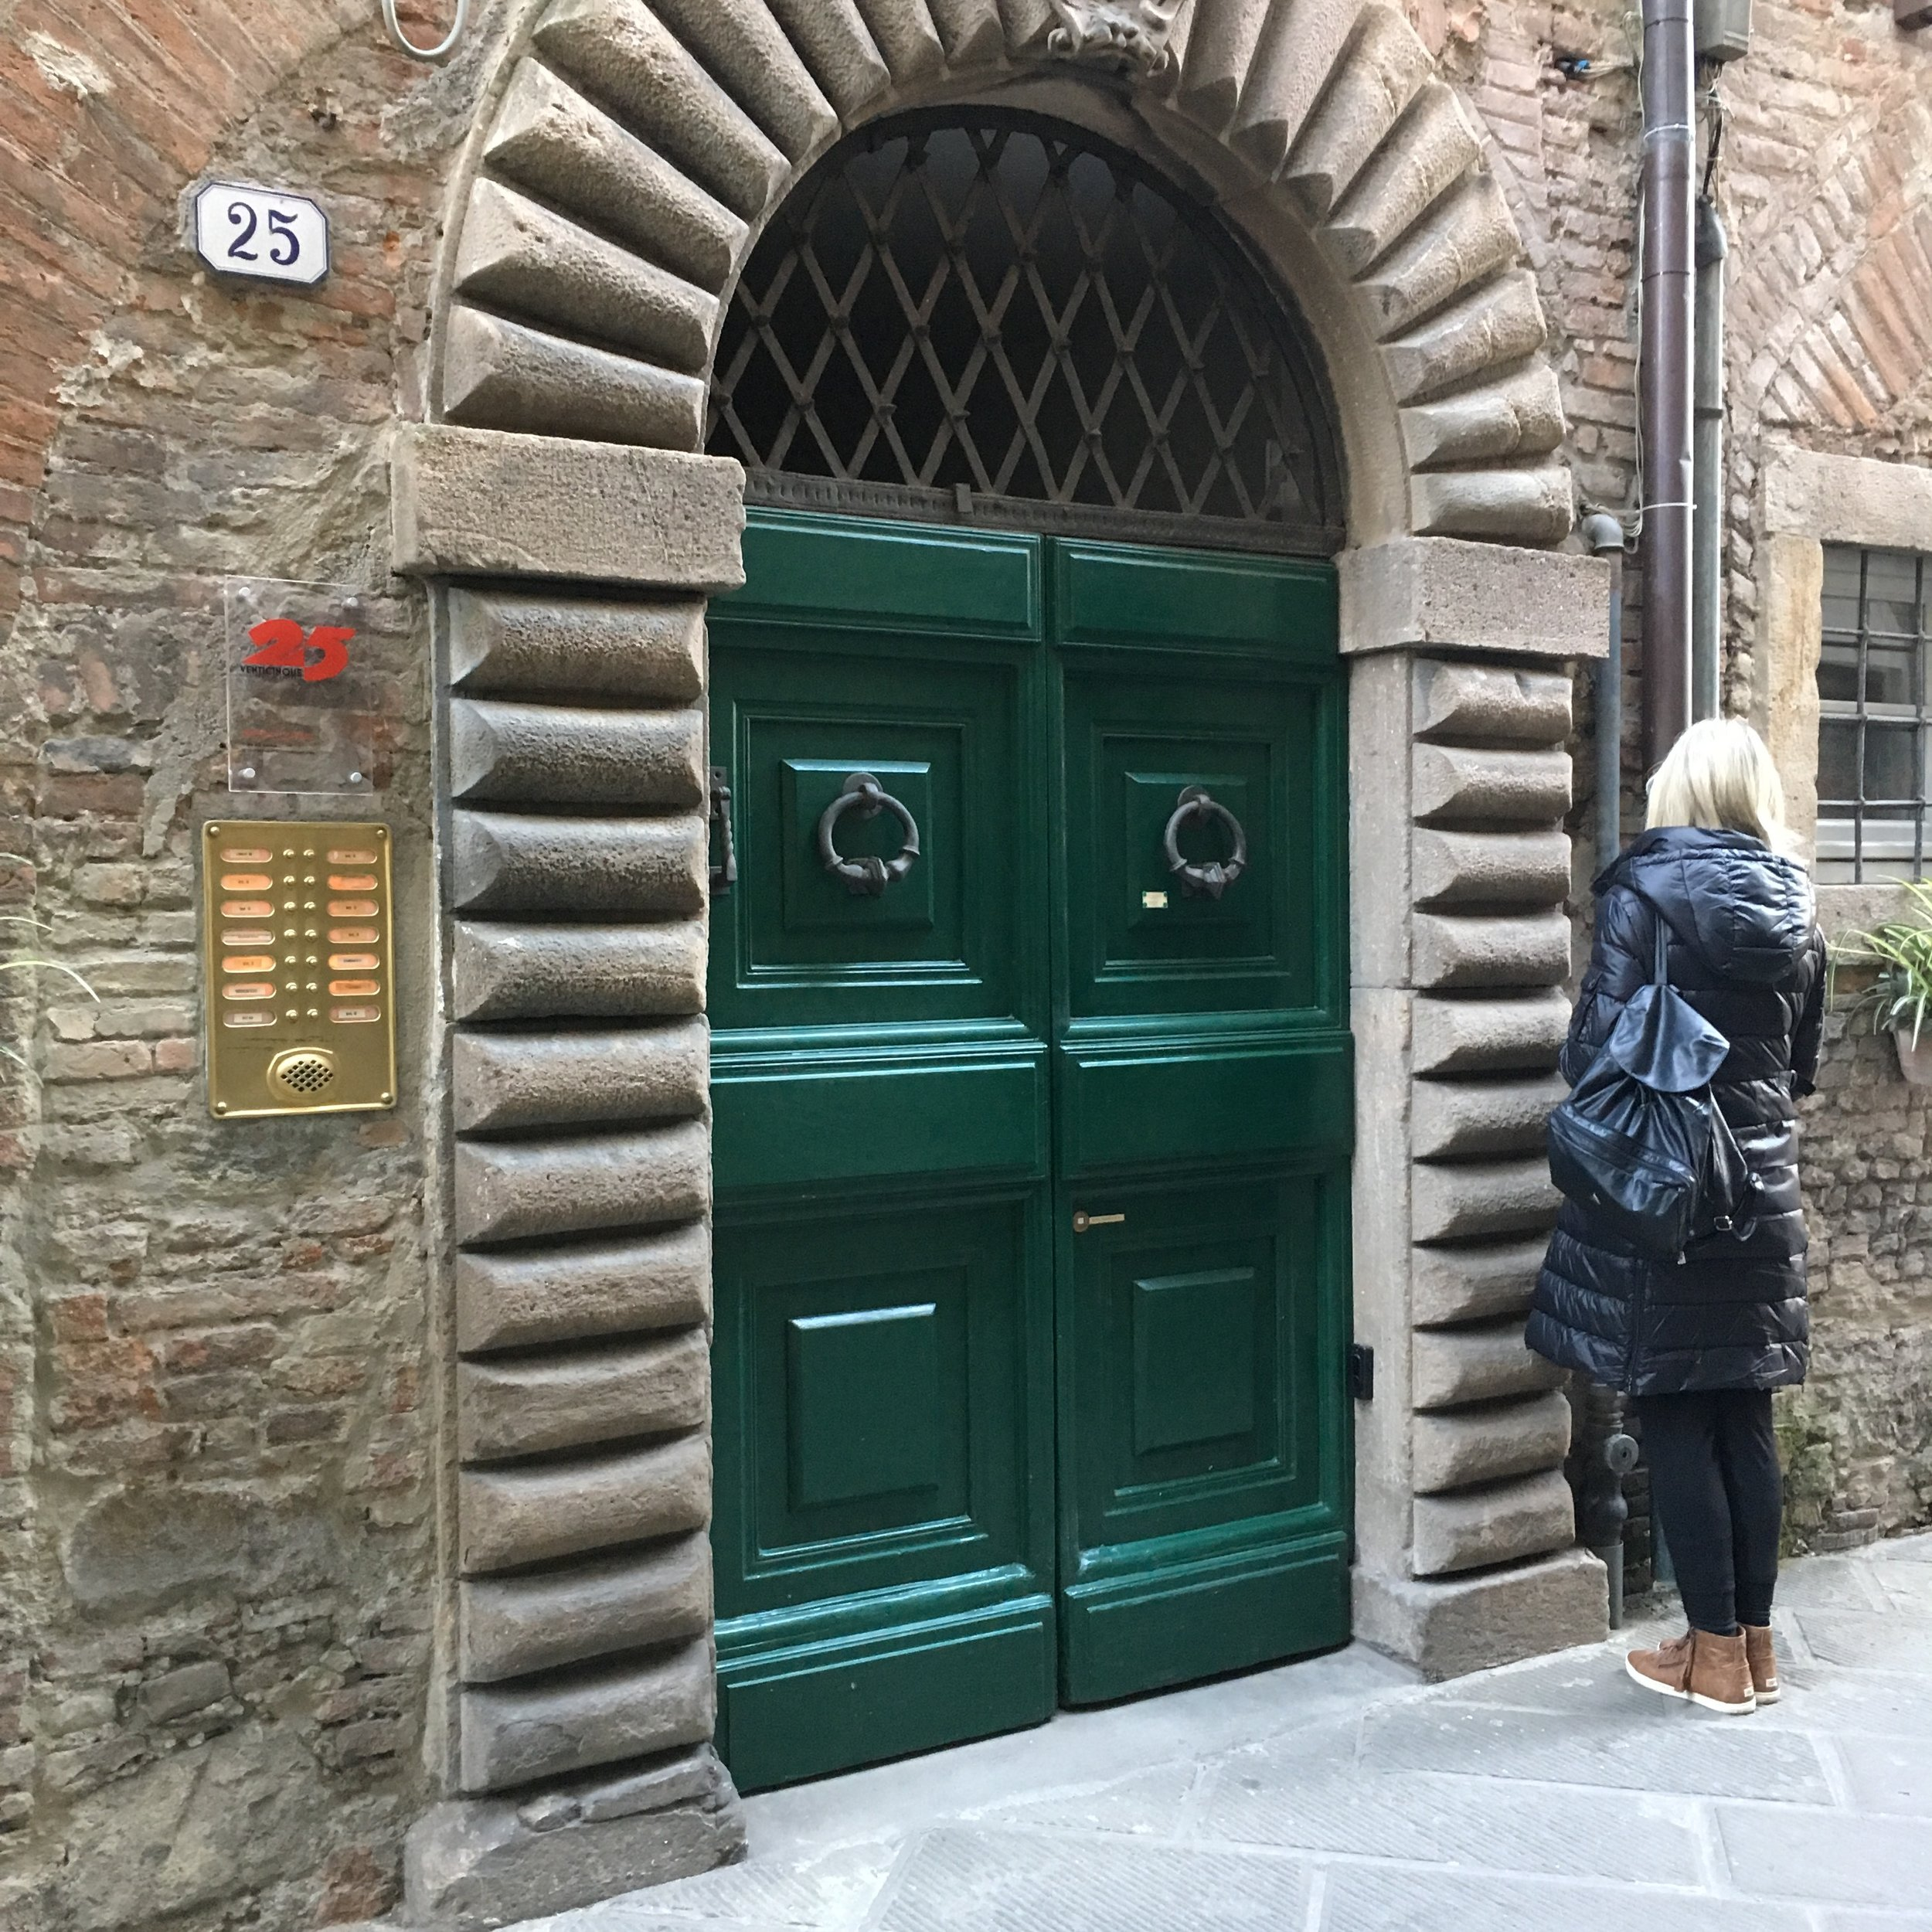 Judy at the front door to the apartment on Via Pelleria in Lucca.